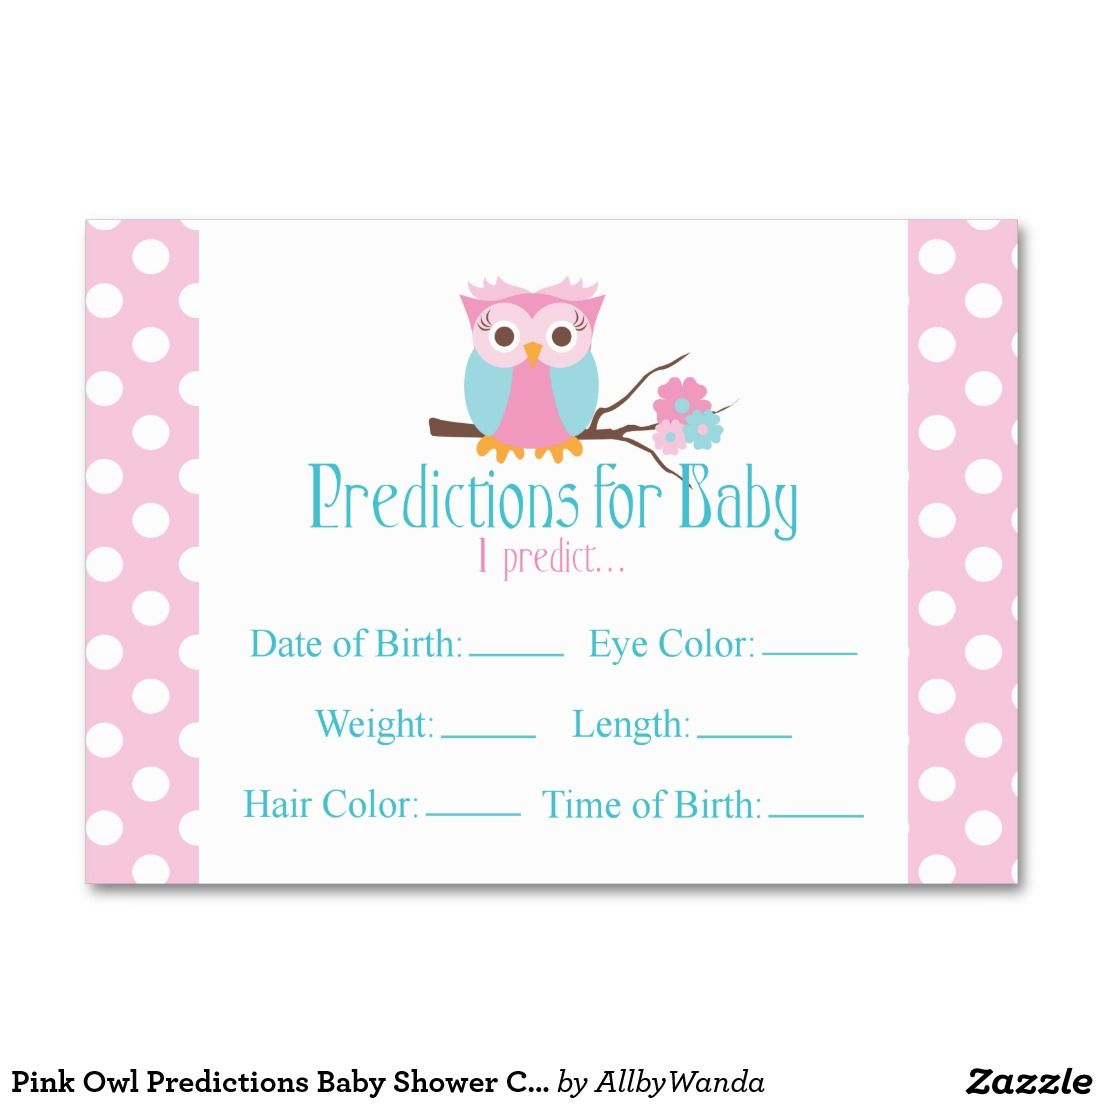 Pink Owl Predictions Baby Shower Card Large   Pink owl, Baby shower ...